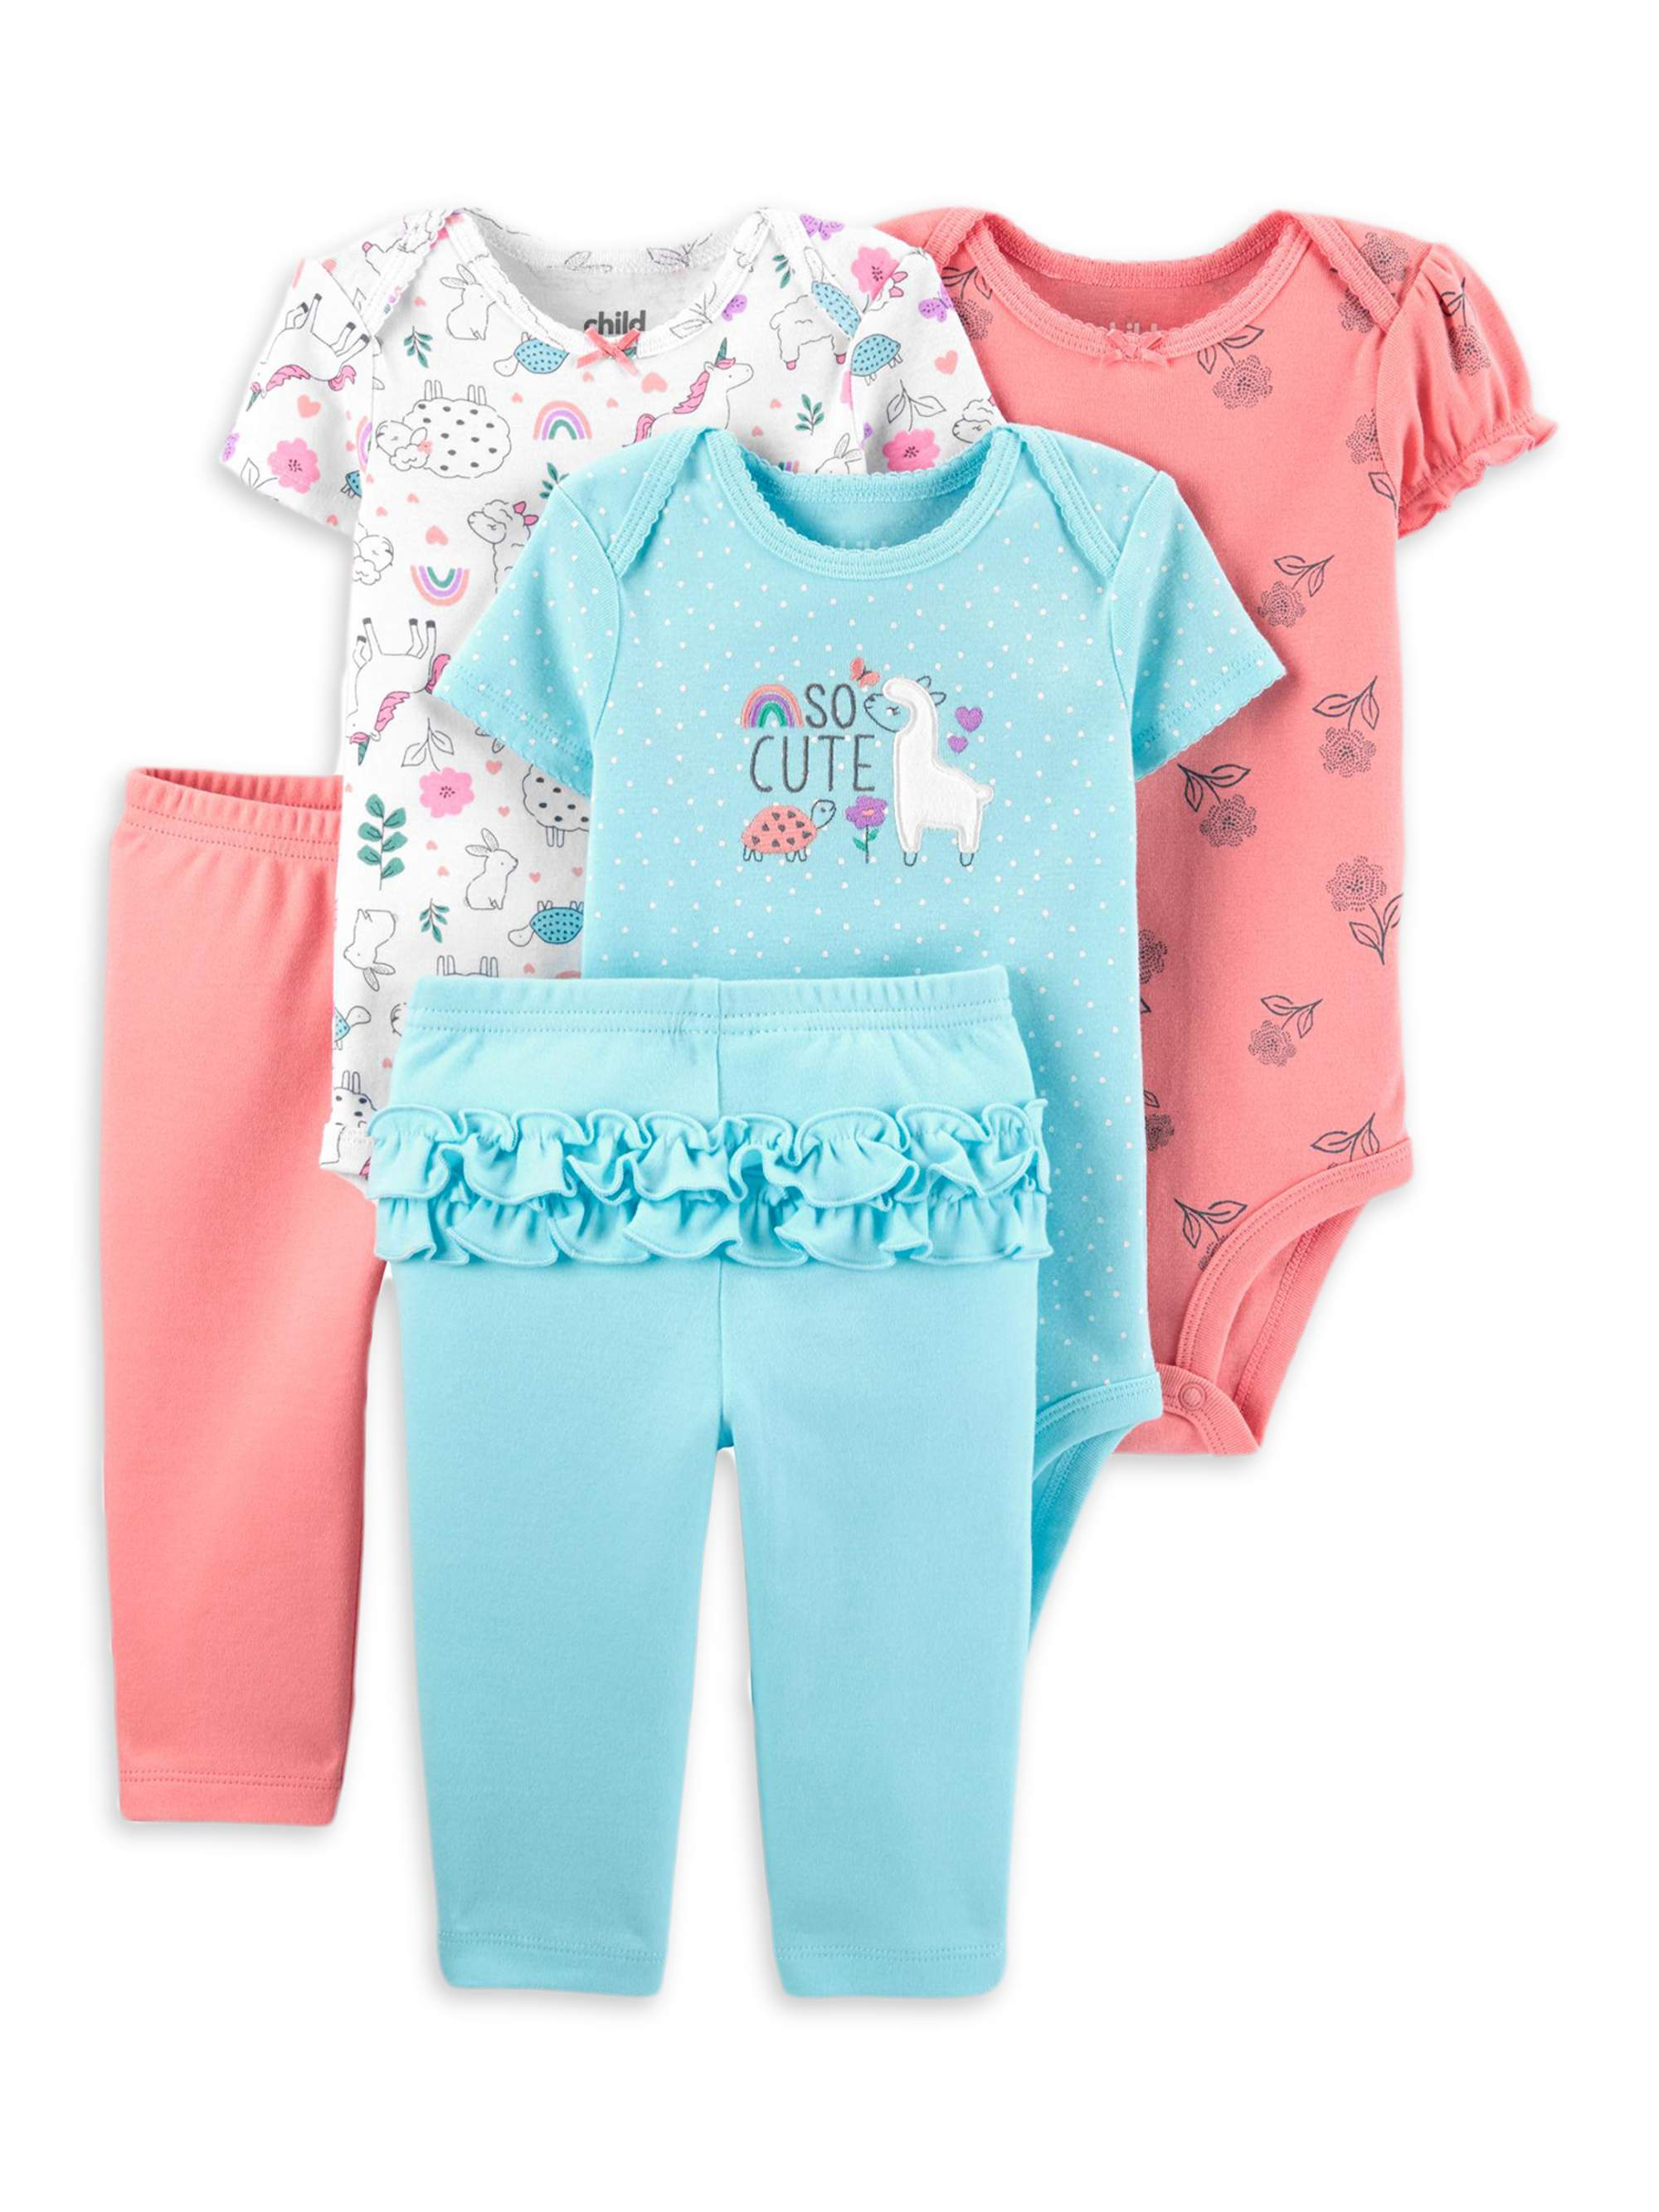 BINIDUCKLING Unisex Infant 2-Pack Cozy Footed Pajamas Outfits Newborn Baby Boy Girls Solid Colors Cotton Onesies Sleepsuit Rompers 0-12 Months